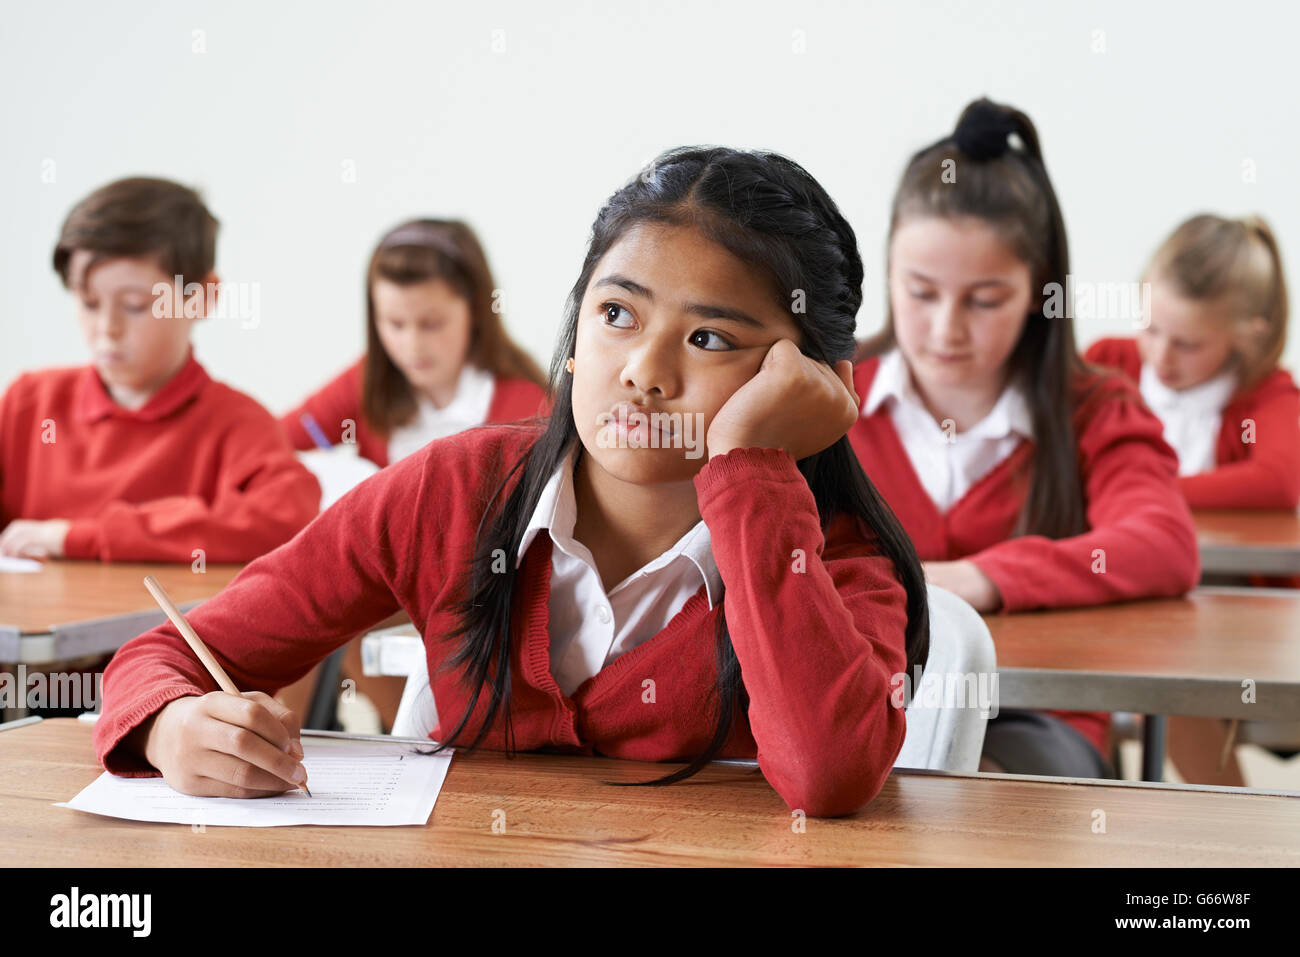 Female Pupil Finding School Exam Difficult - Stock Image